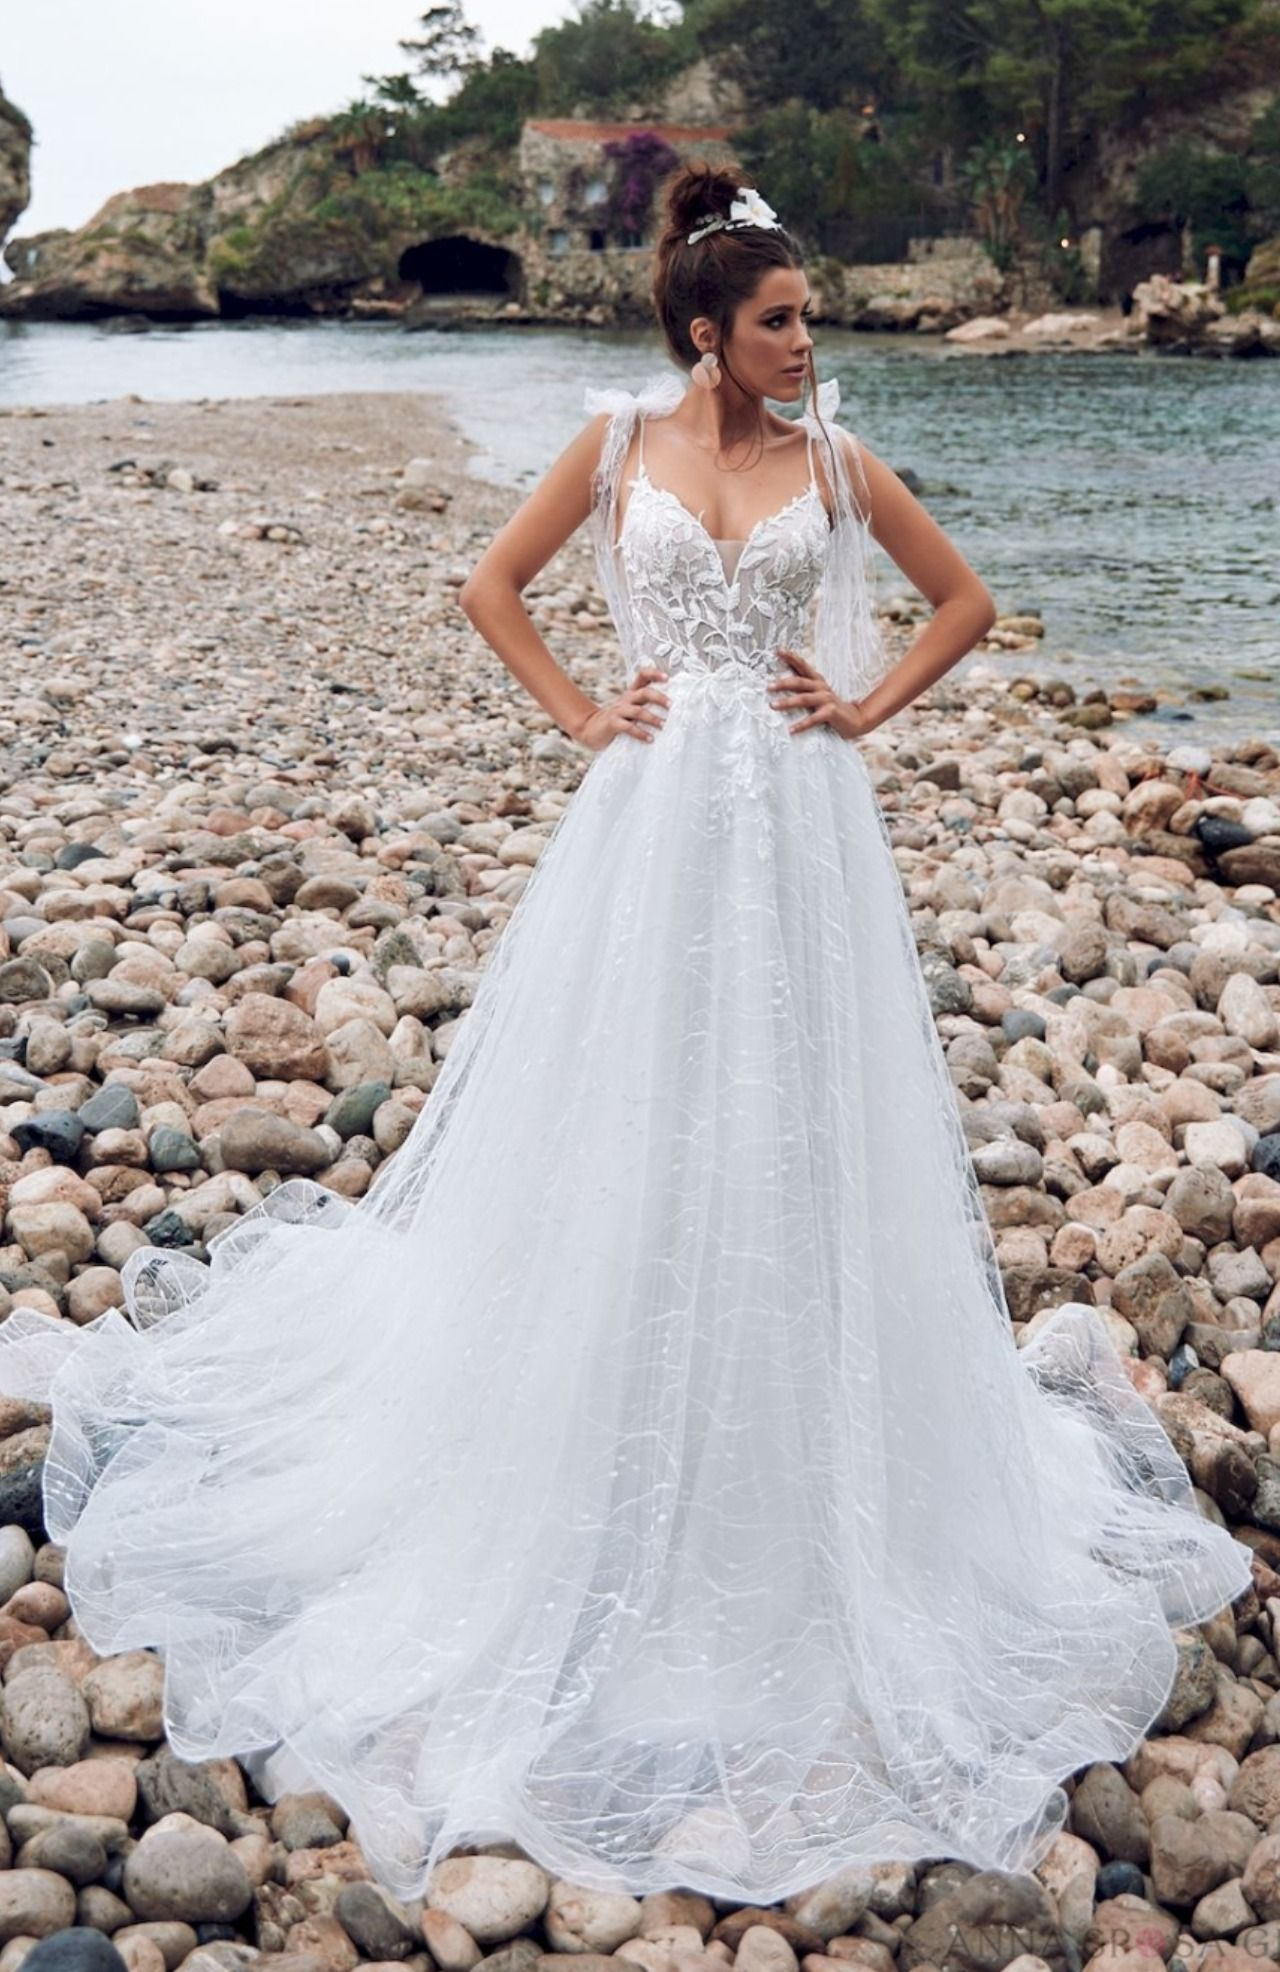 Beliche Wedding Dress Bella Sicilia Collection In 2020 Wedding Dresses With Straps Bow Wedding Dress Wedding Dresses Ebay